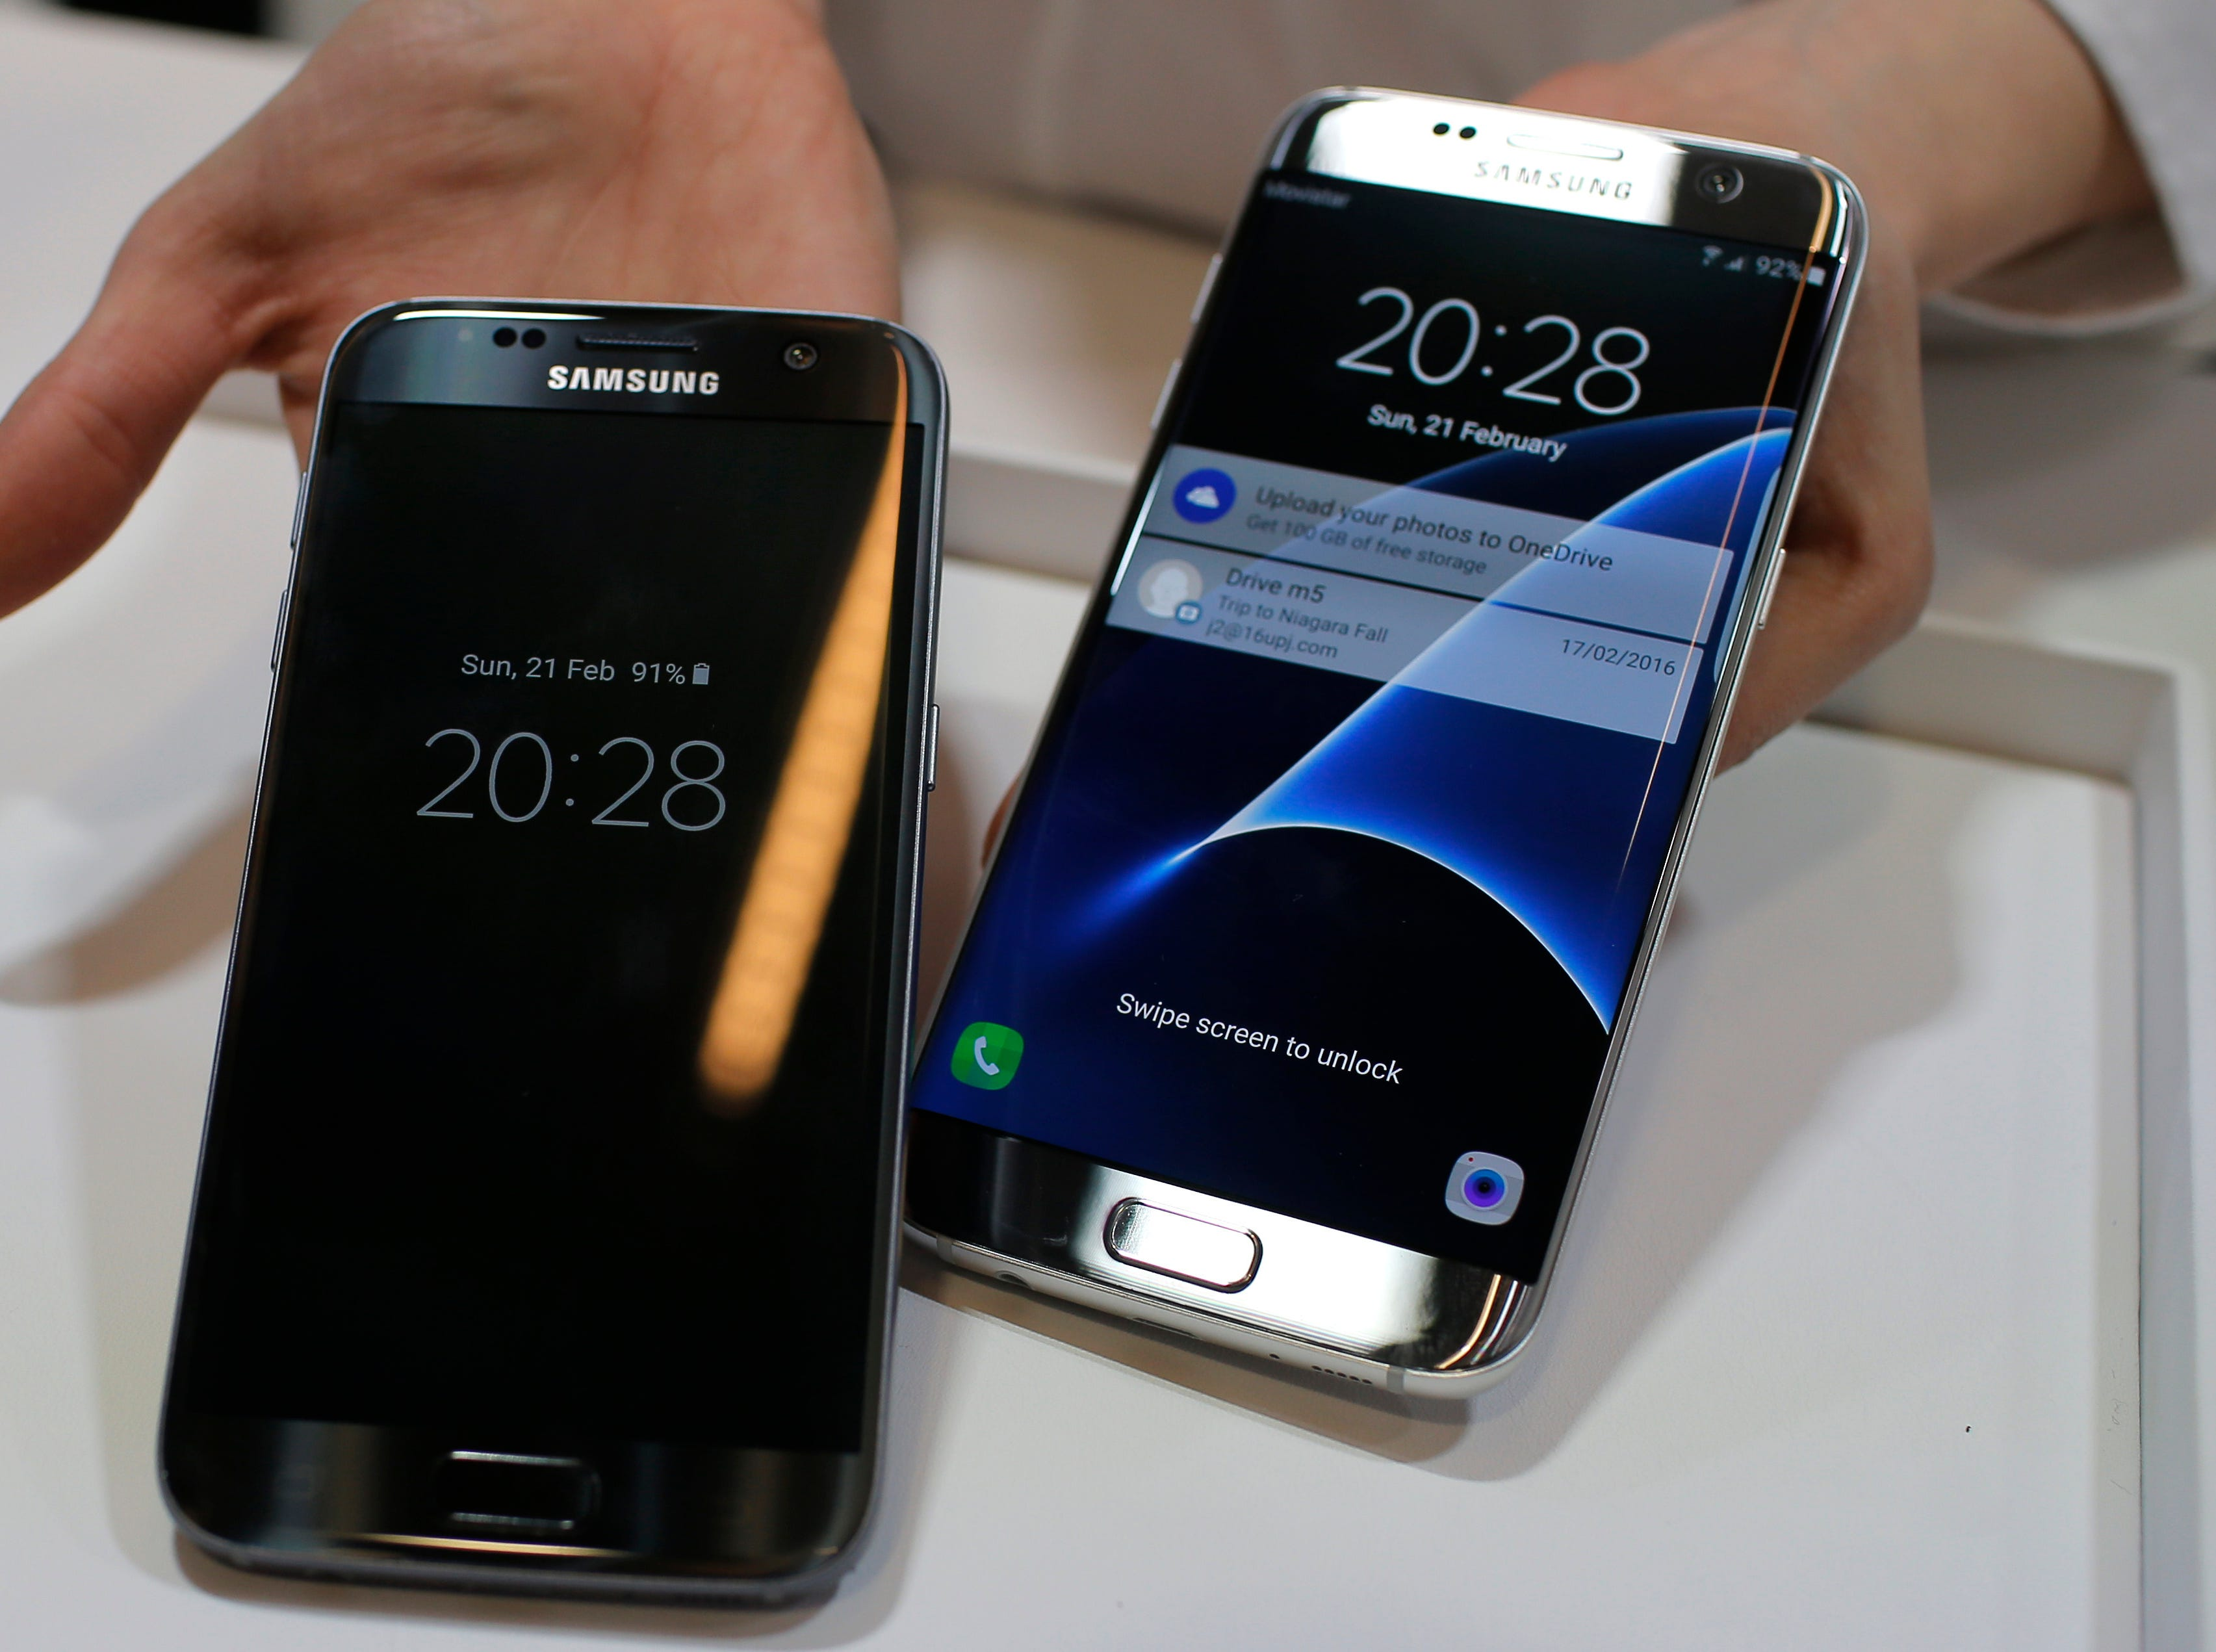 In this Sunday, Feb. 21, 2016, file photo, a Samsung Galaxy S7, left, and S7 Edge are displayed during the Samsung Galaxy Unpacked 2016 event. The new Galaxy S7 and S7 Edge phones take better pictures than the S6 models and brought back popular features such as water resistance and a microSD card slot.